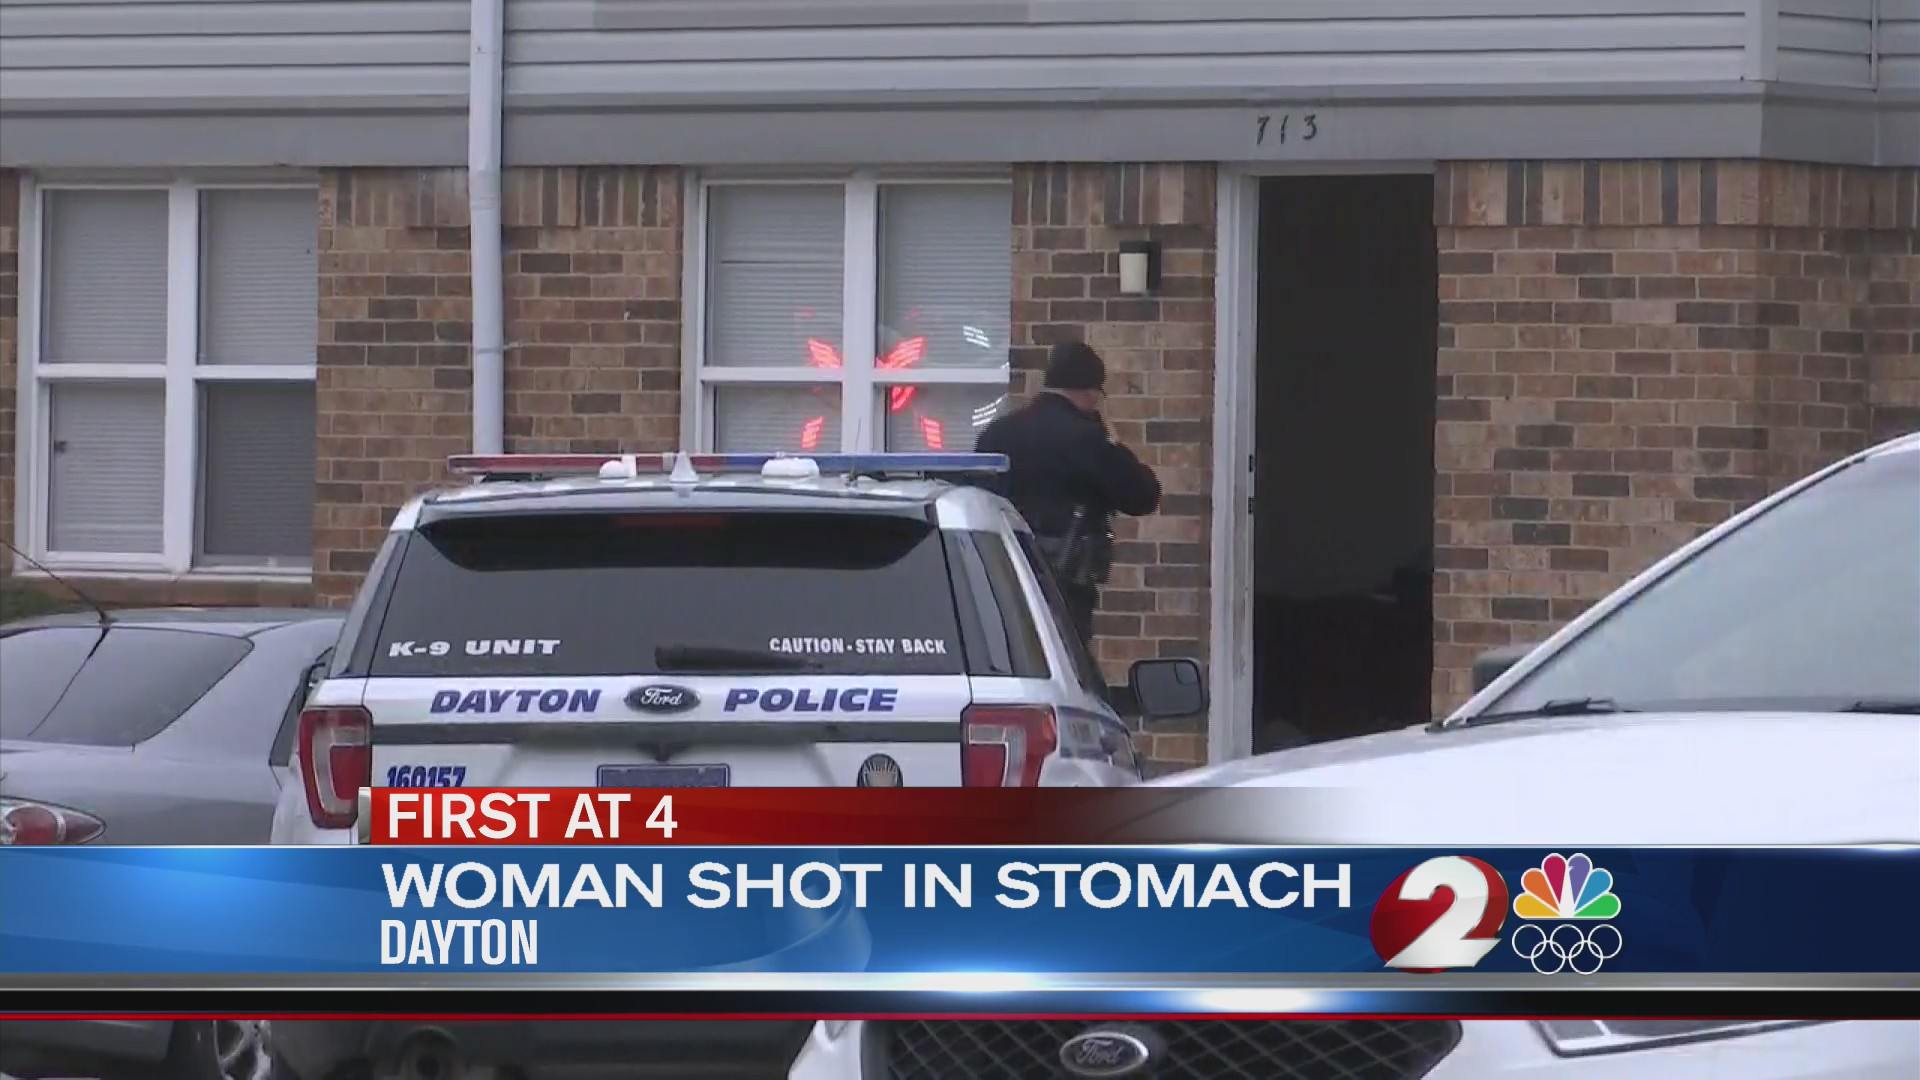 Woman shot in stomach